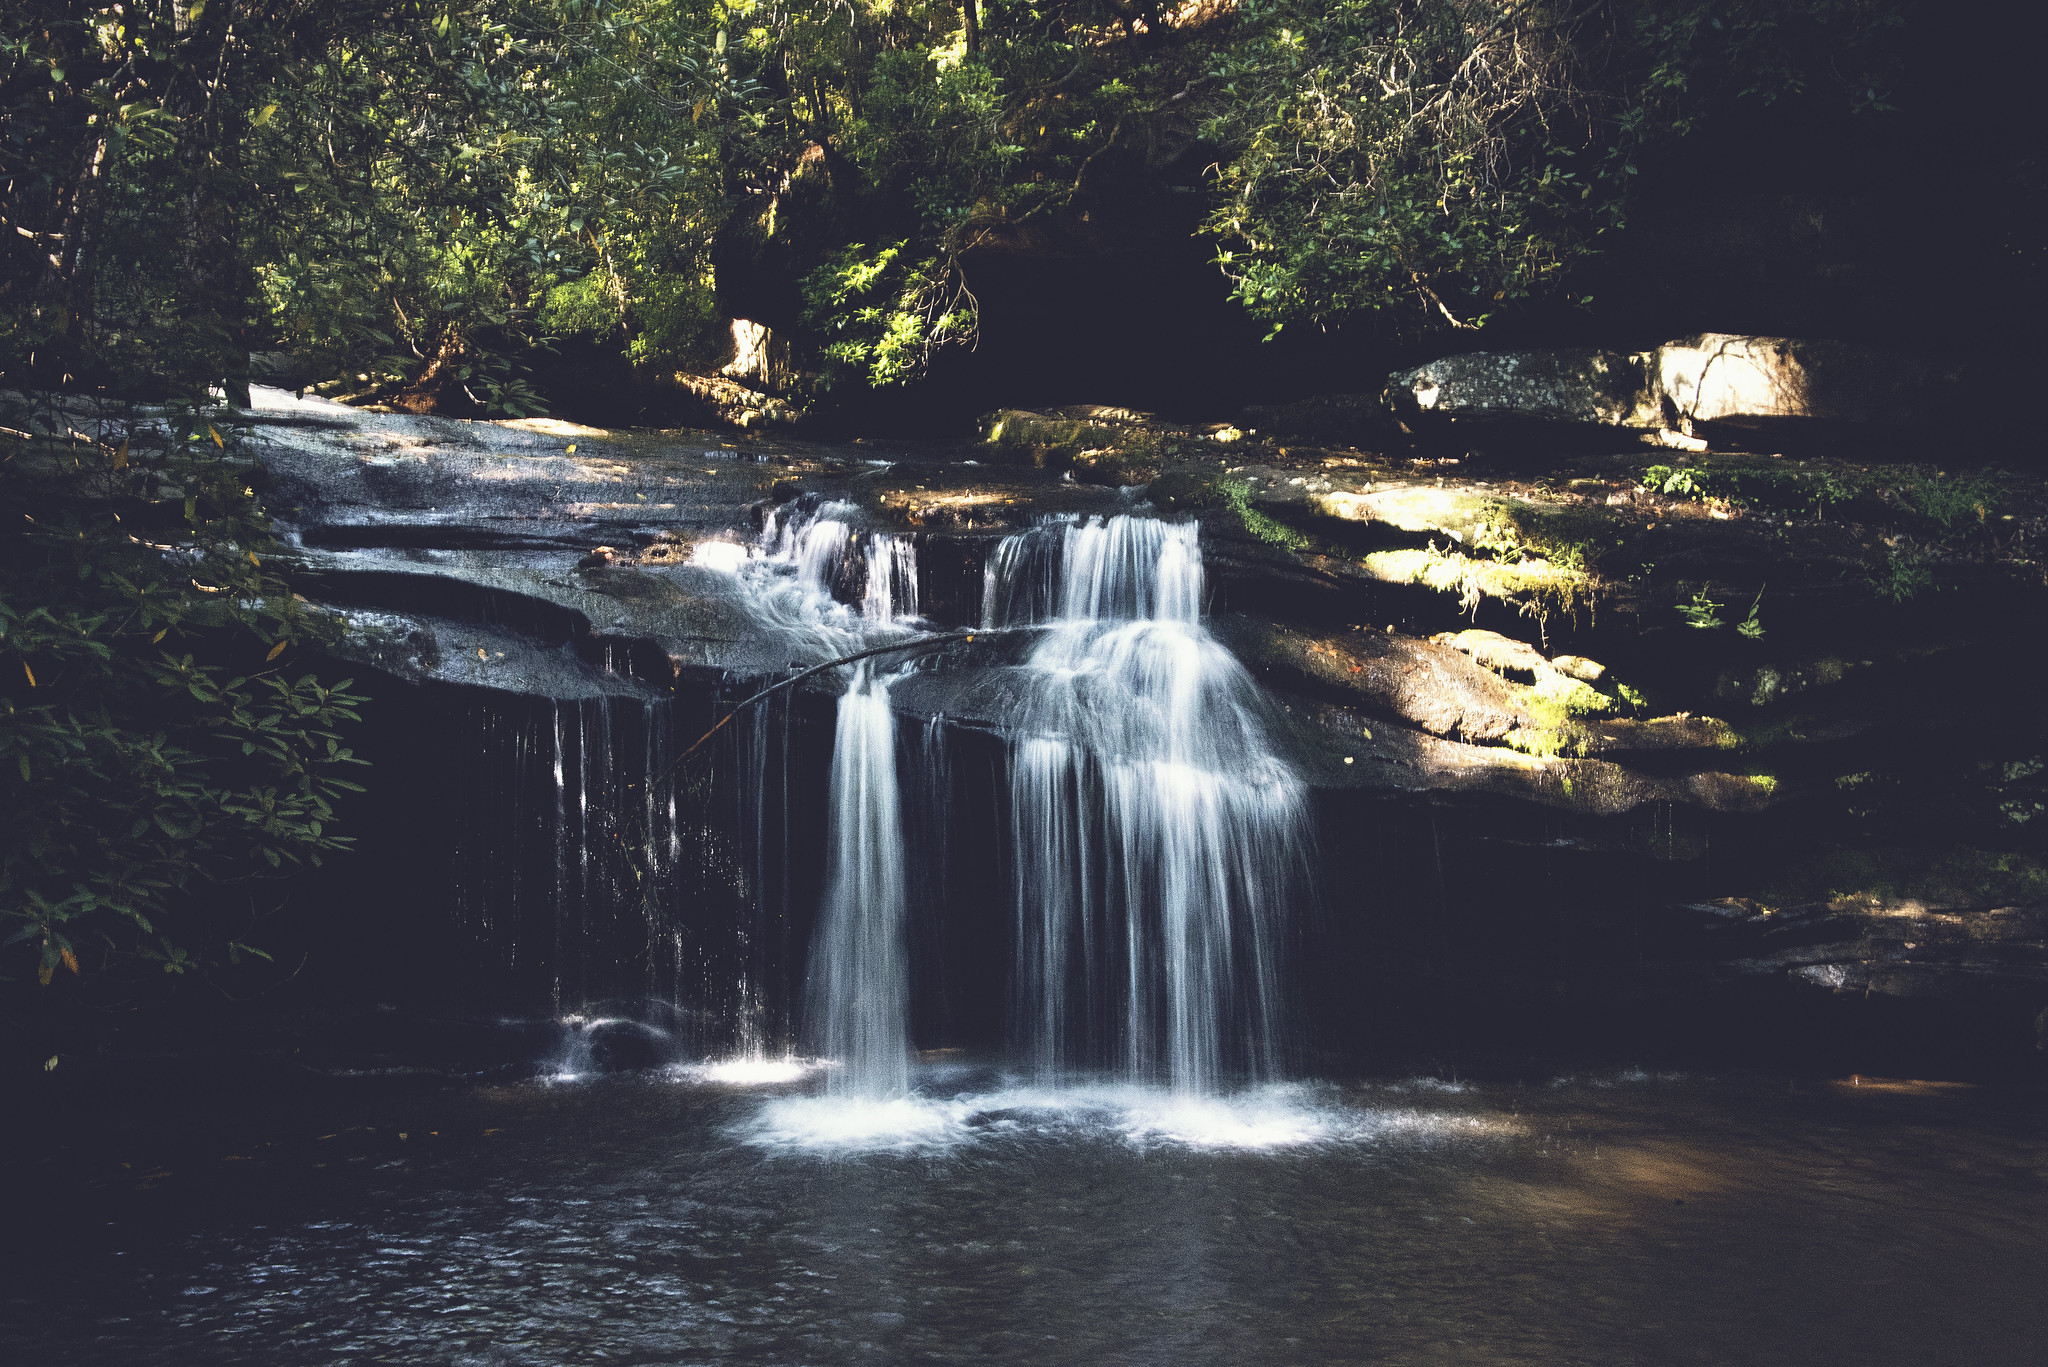 South Carolina Hiking and Falls | KitaRobertsPhotography.com